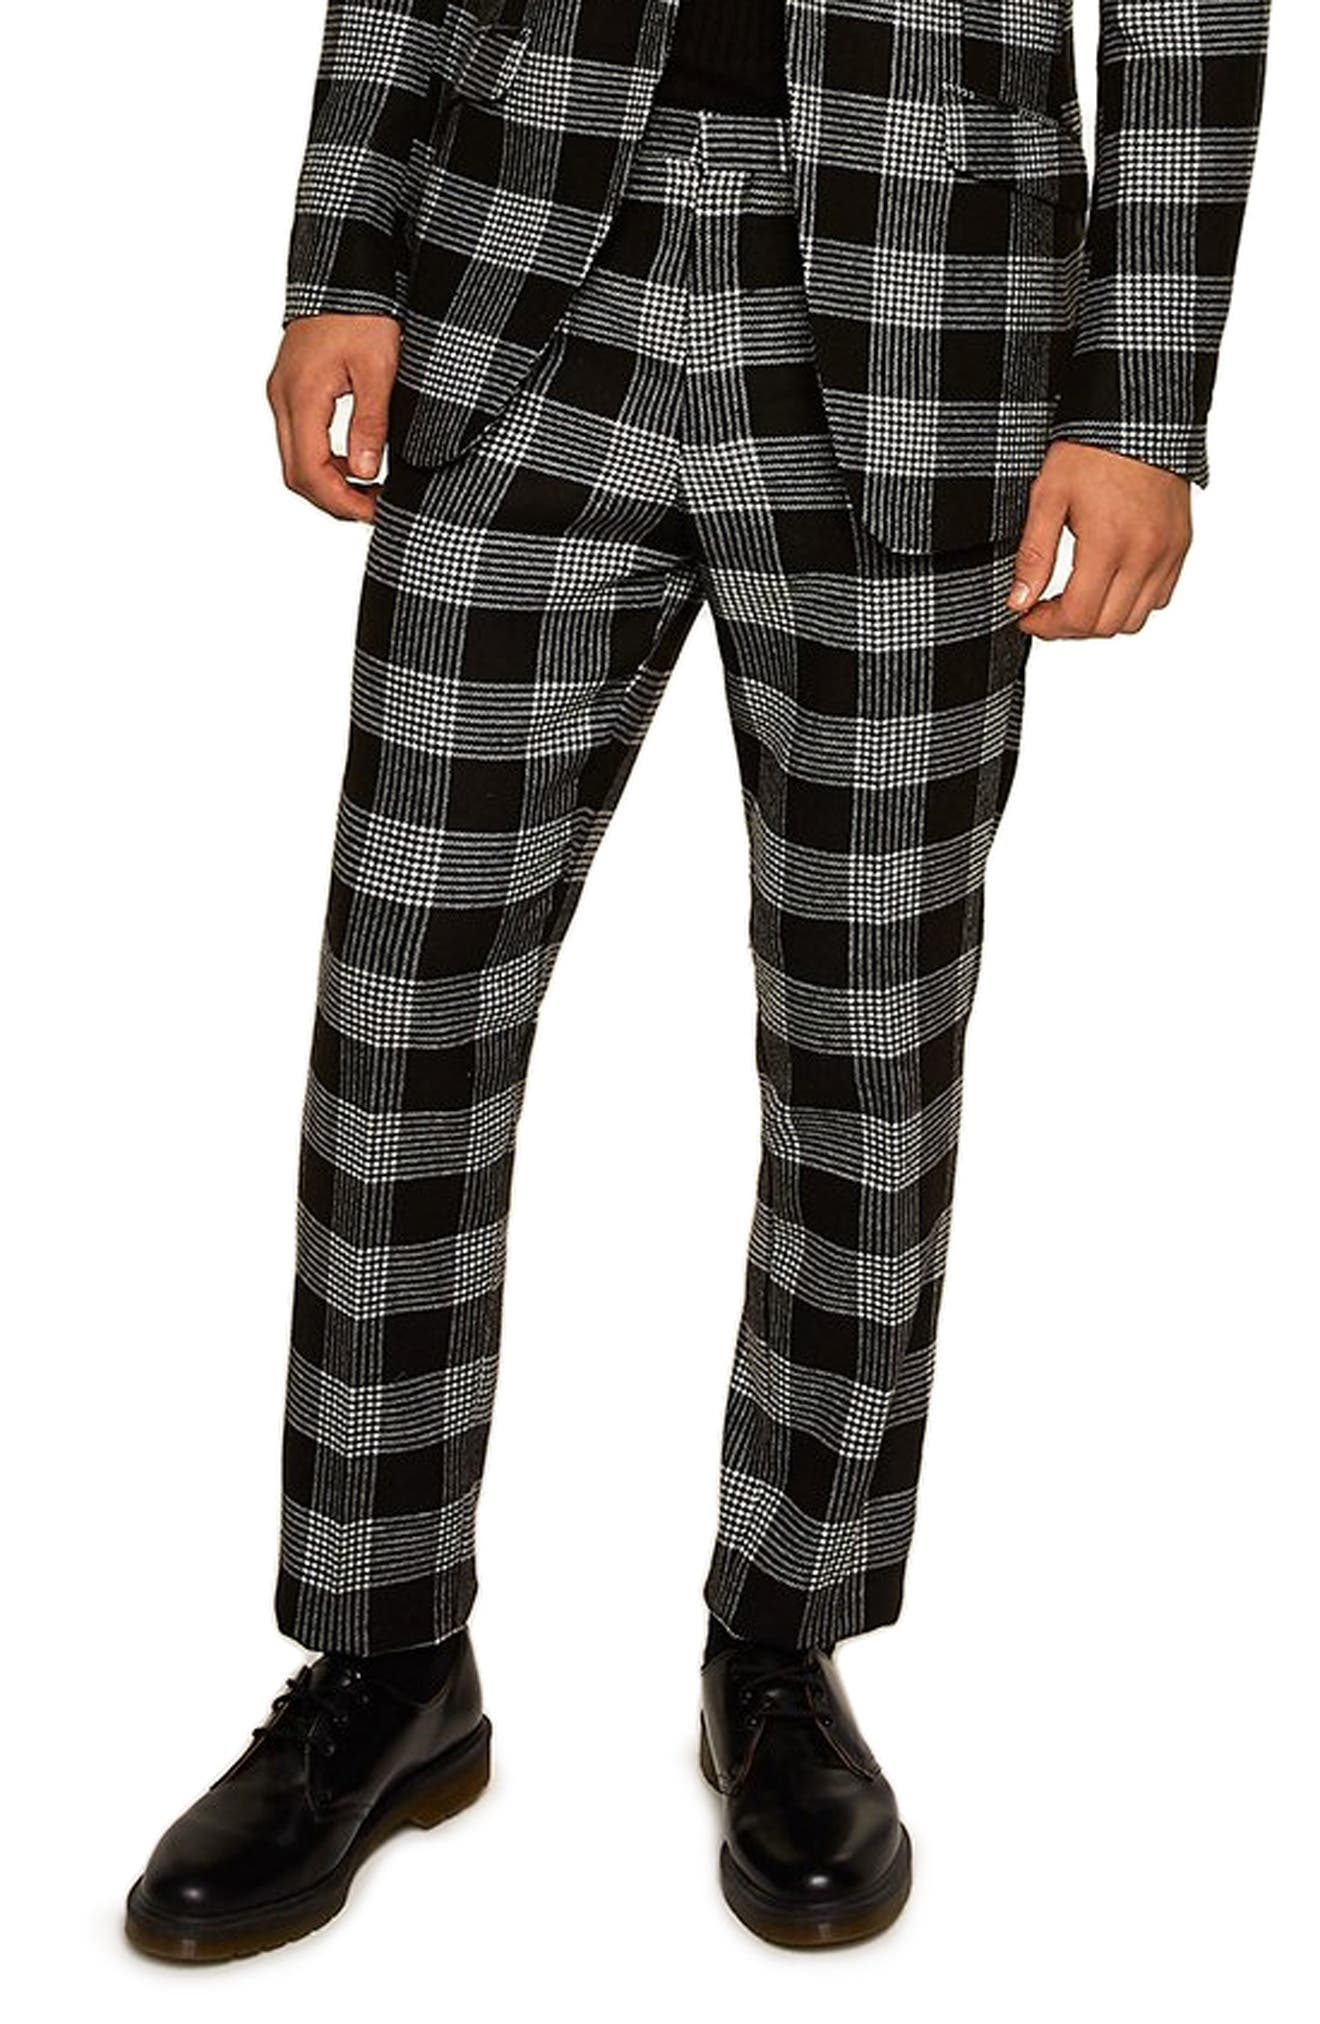 Leigh Classic Check Slim Fit Trousers,                             Main thumbnail 1, color,                             BLACK MULTI